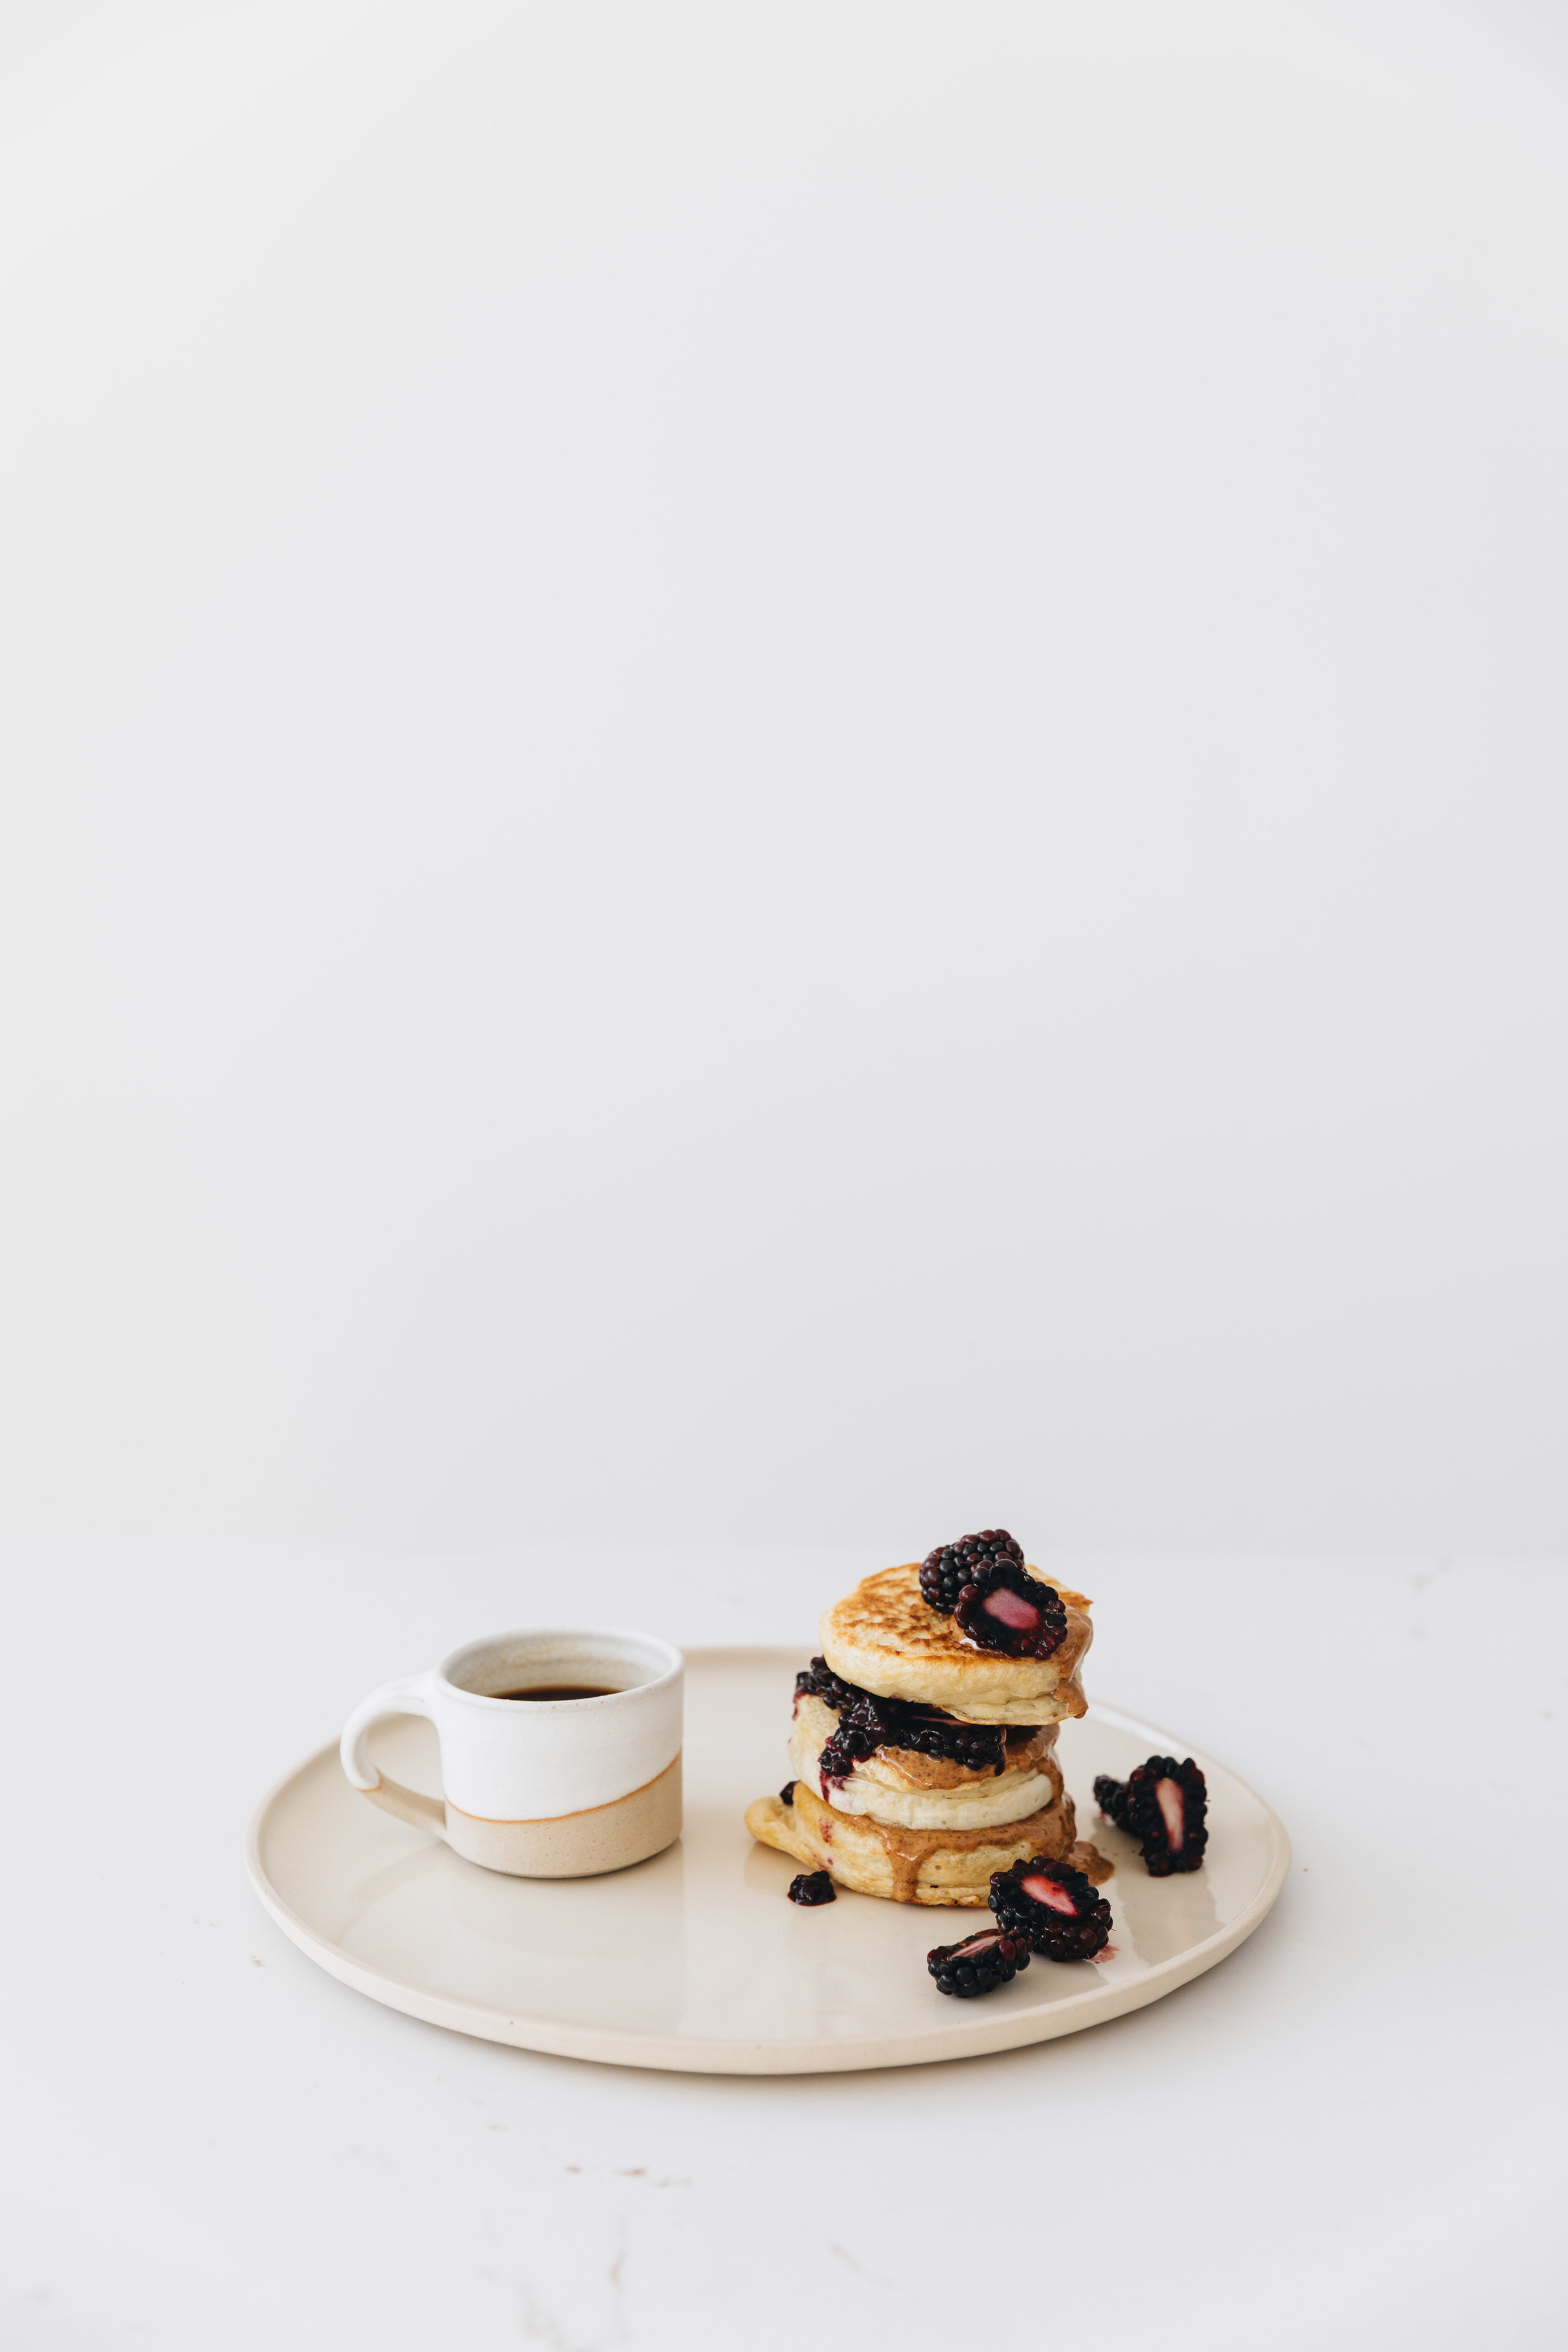 Crumpets With Nut Butter & Blackberries